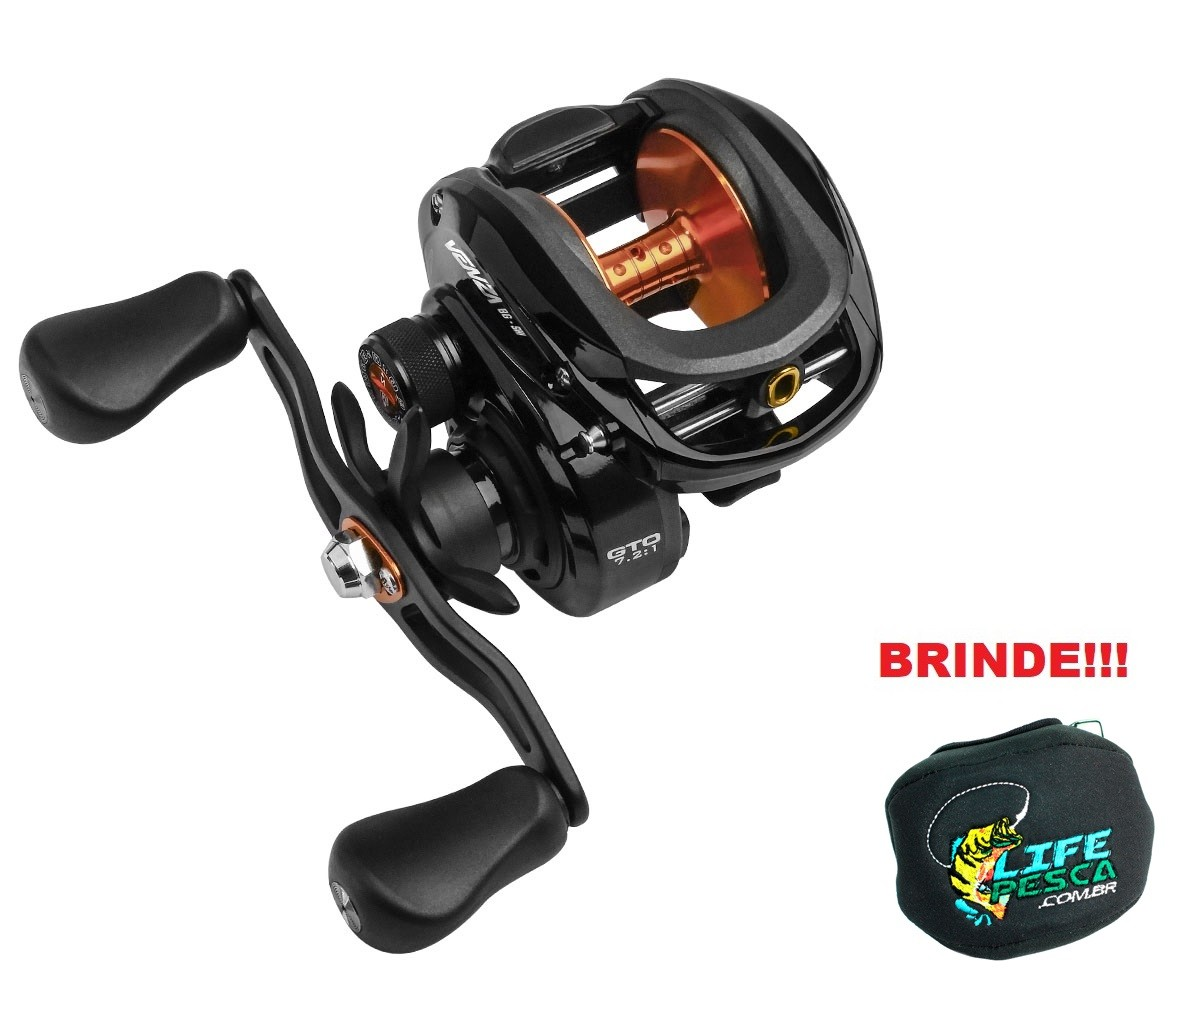 Carretilha Marine Sports Venza Big Game GTO 7000 - 7 Rolamentos